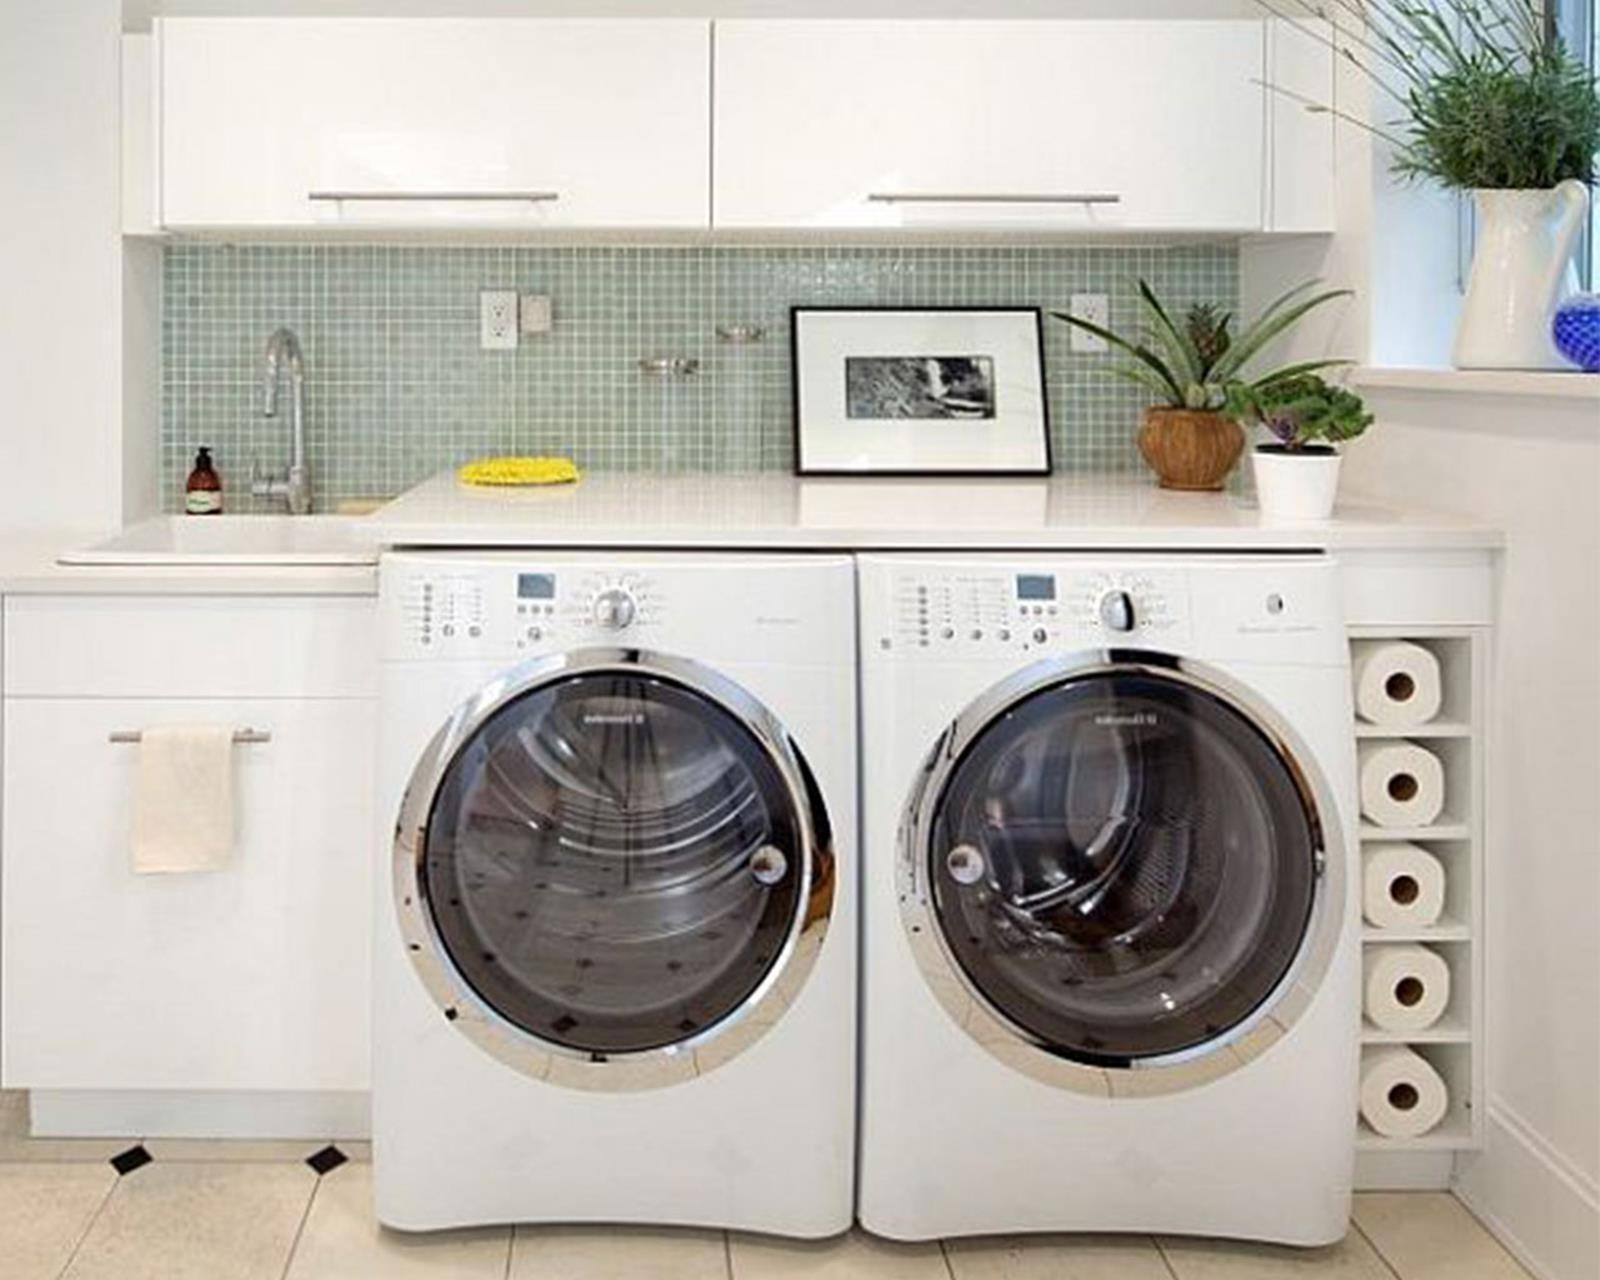 Decorating A Laundry Room On A Budget 22